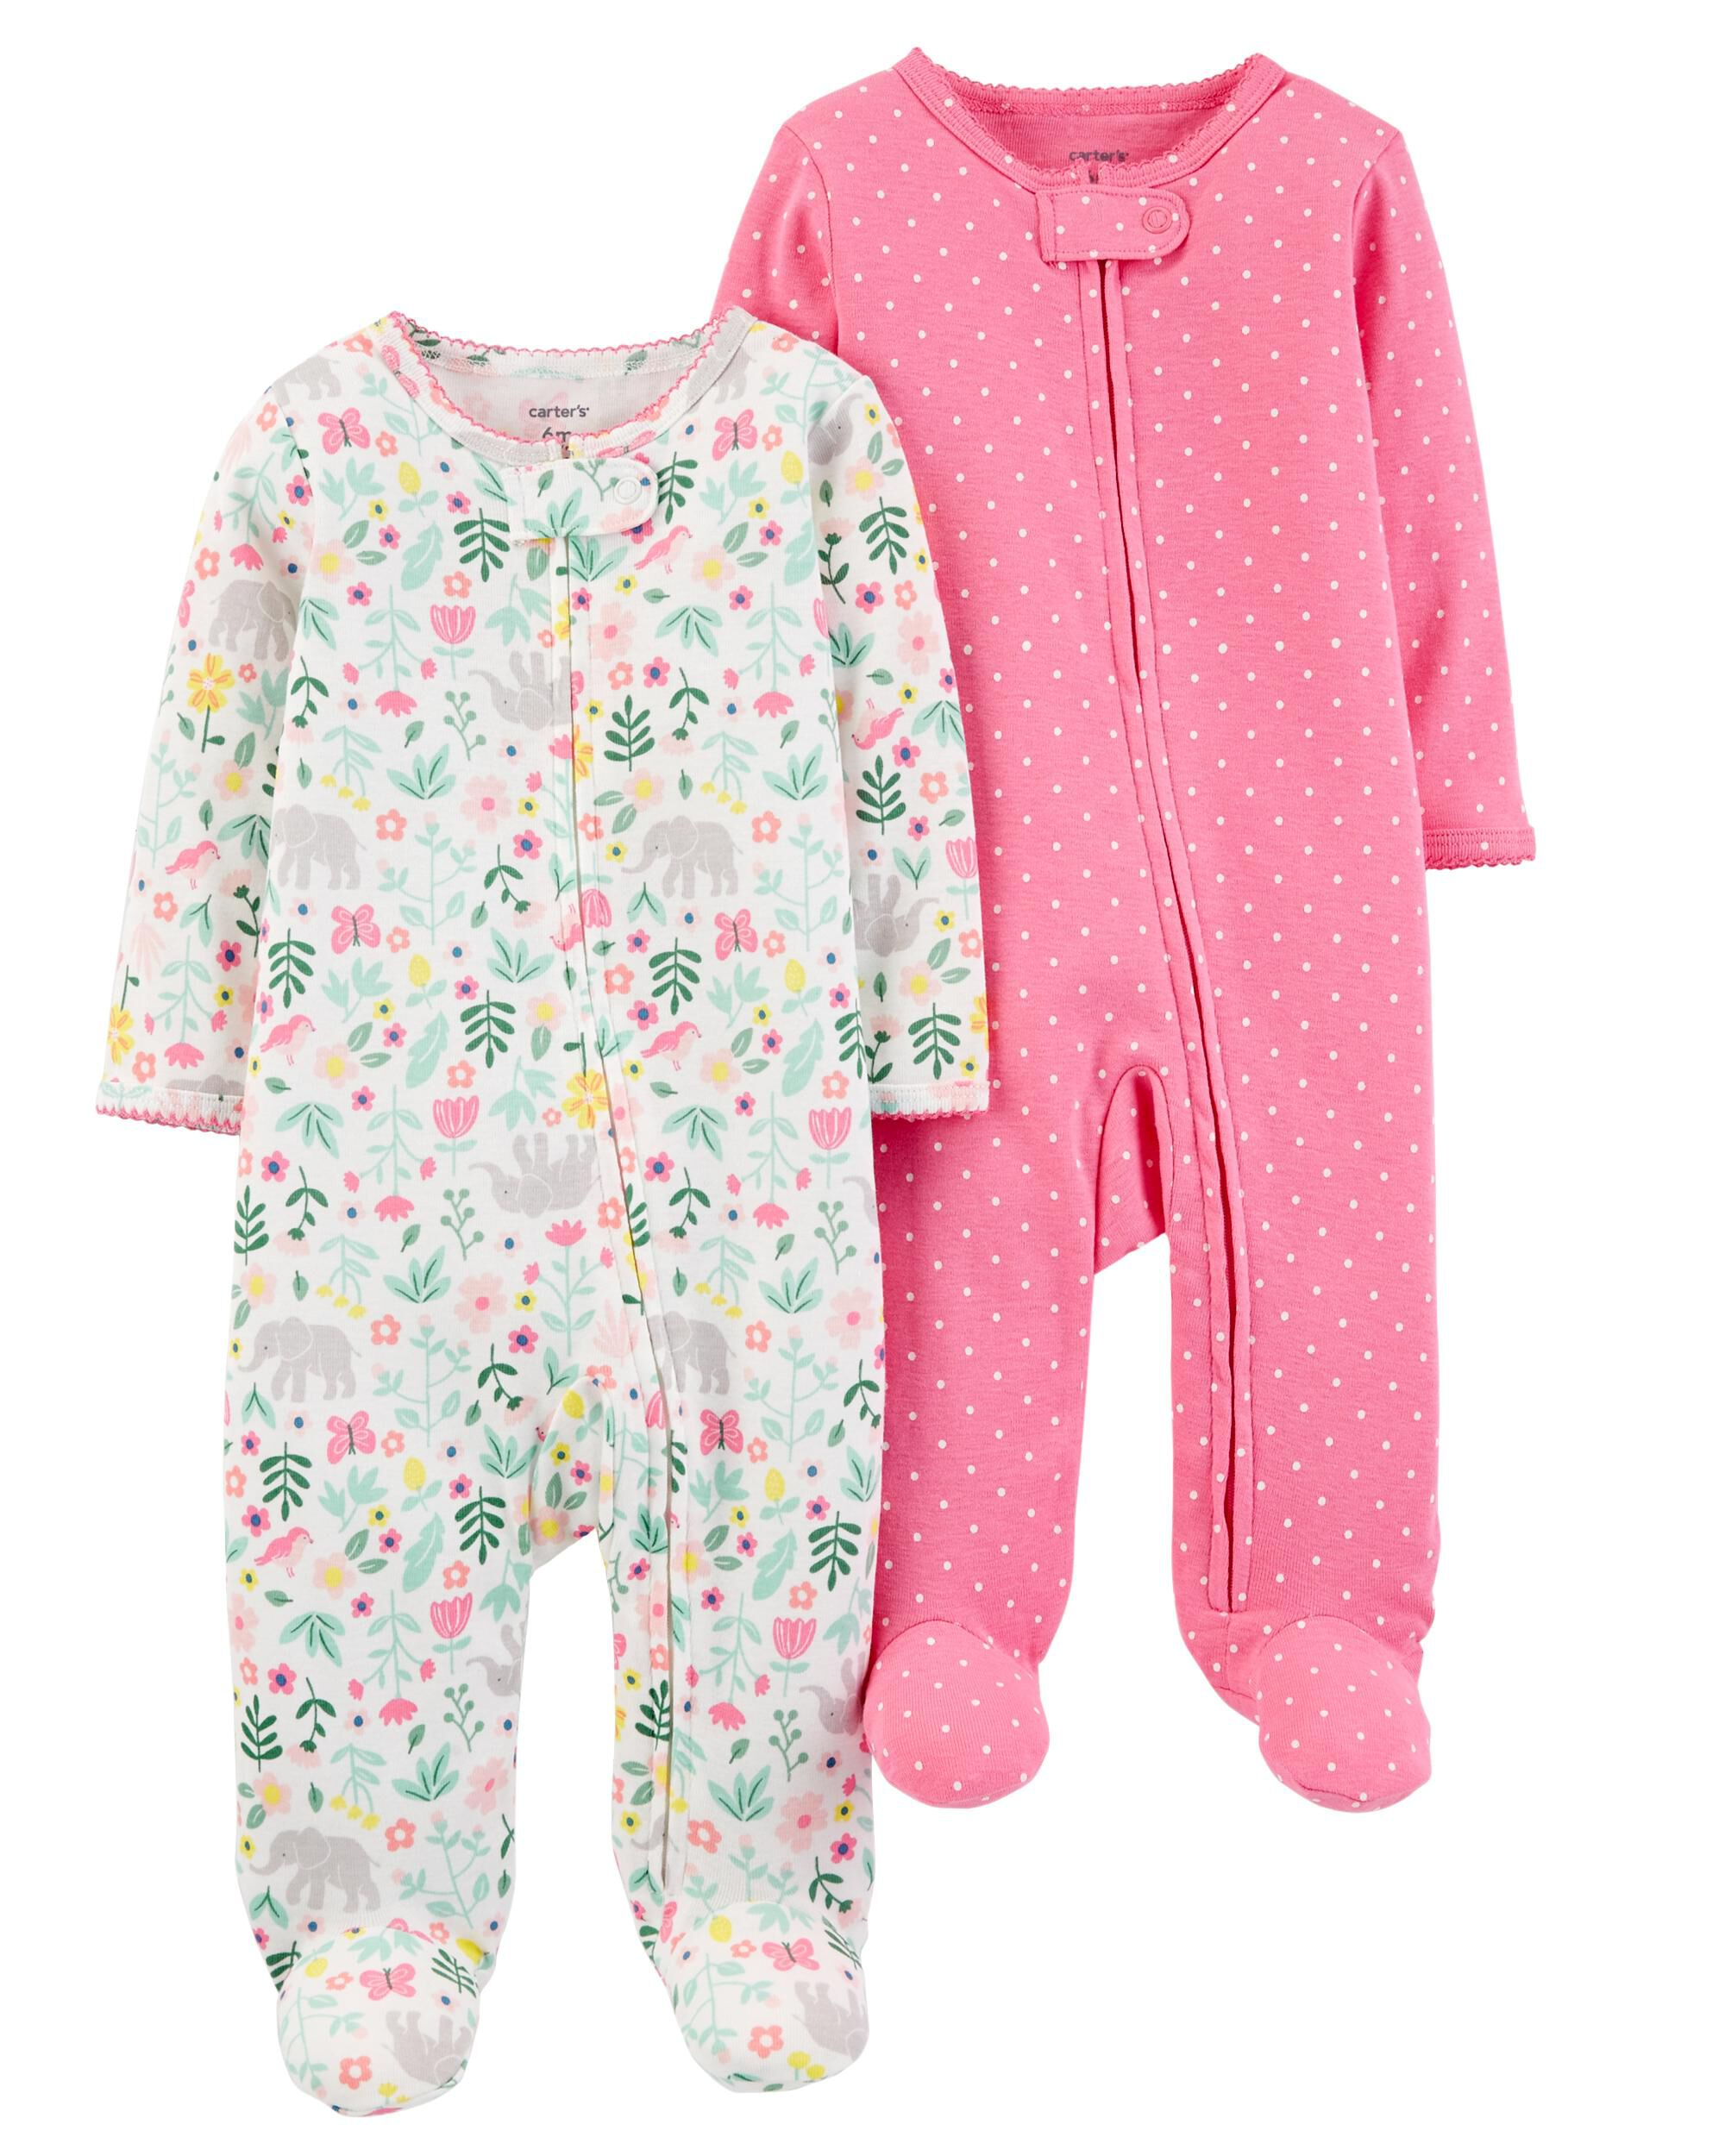 Display product reviews for 2-Pack Zip-Up Cotton Sleep \u0026 Play Set Baby Girl Pajamas | Carter\u0027s Free Shipping